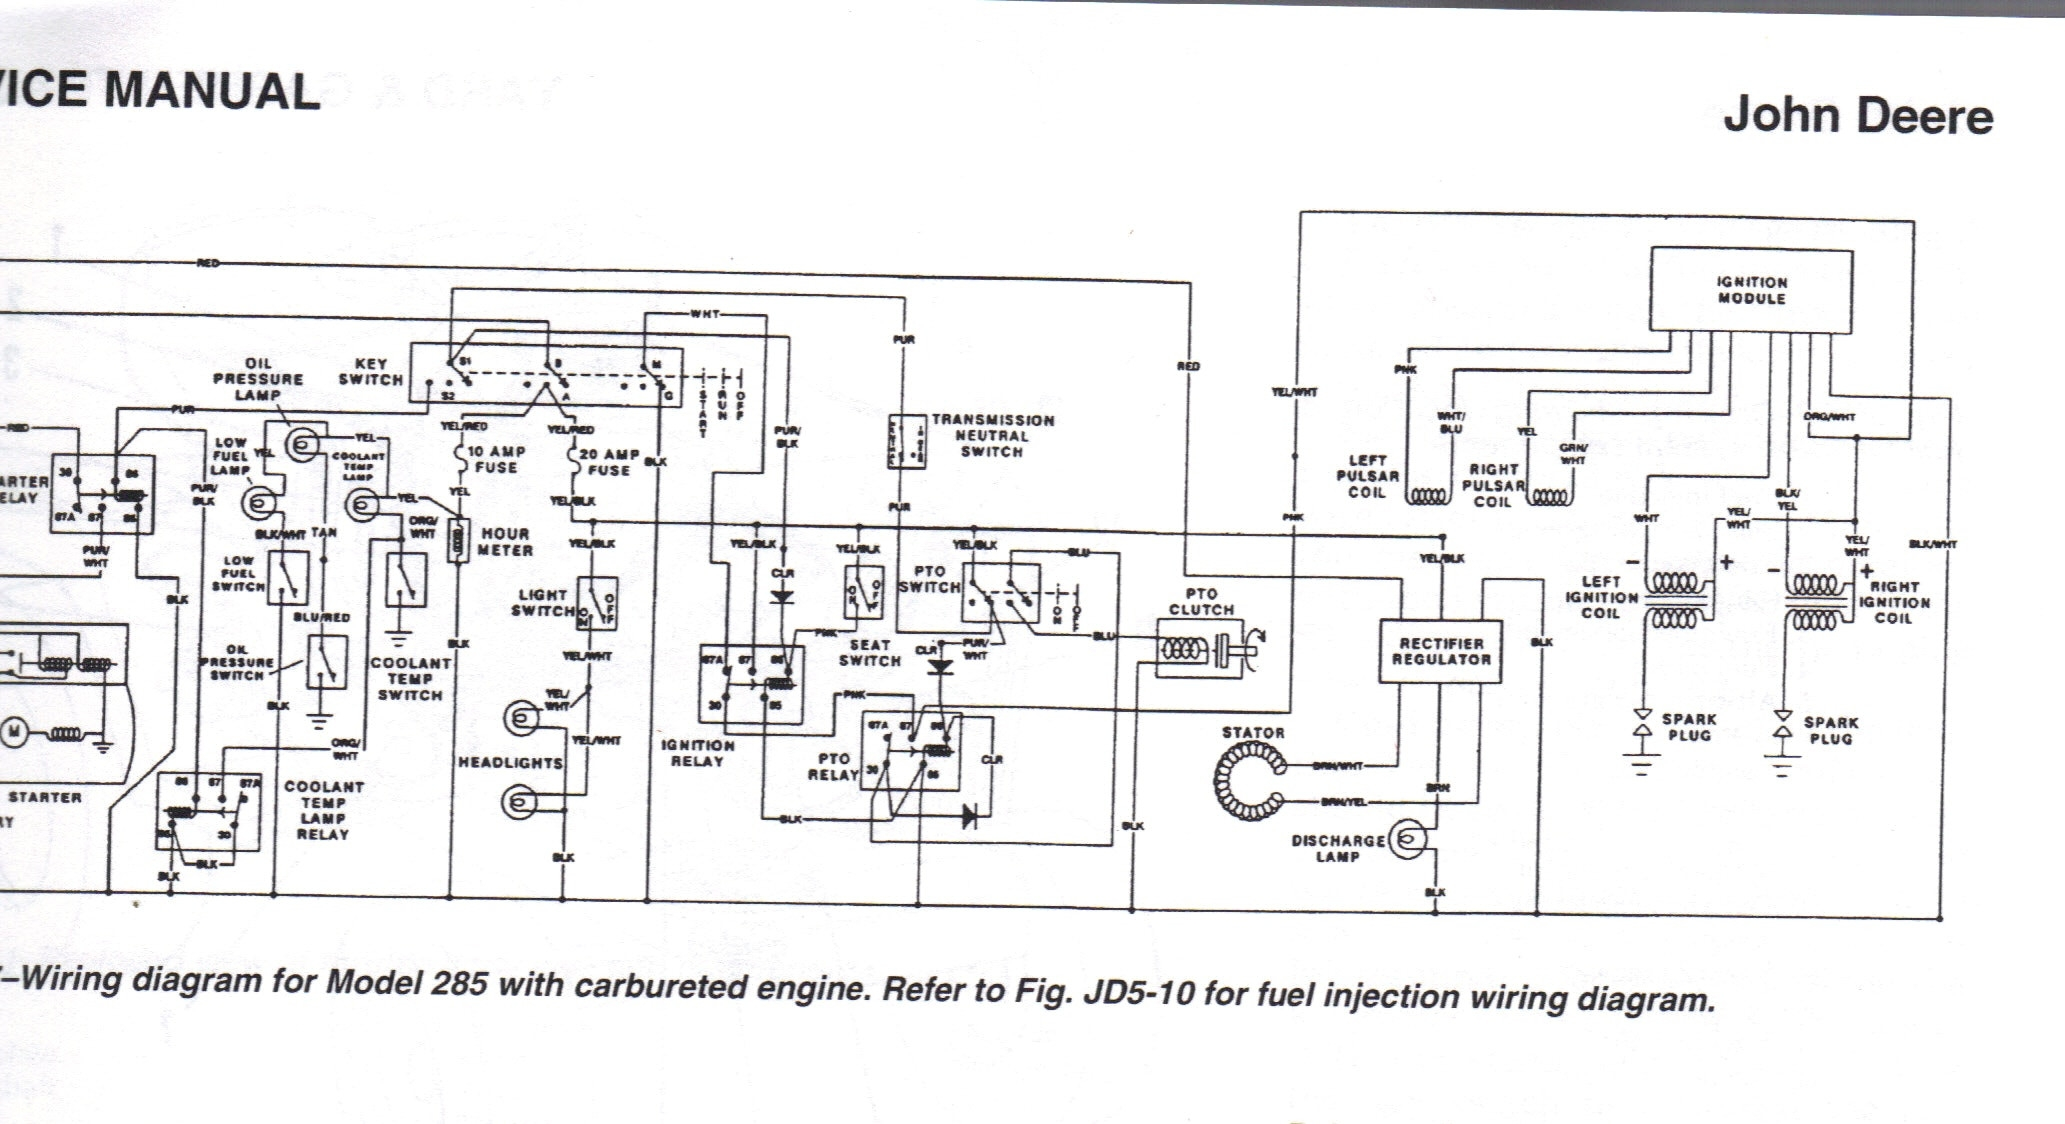 "John Deere L125 Wiring Diagram | Wiring Diagram on john deere d101, john deere la135, john deere attachments, john deere mower discharge chute, john deere d155, john deere 42 inch lawn mower, john deere 108, john deere 125 wiring diagram, john deere 1026r, john deere d120, john deere rear tires, john deere d117, john deere riding lawn mowers, john deere 42"" mower bagger, john deere d110, john deere d104, john deere la115, john deere electrical schematics, john deere l110,"